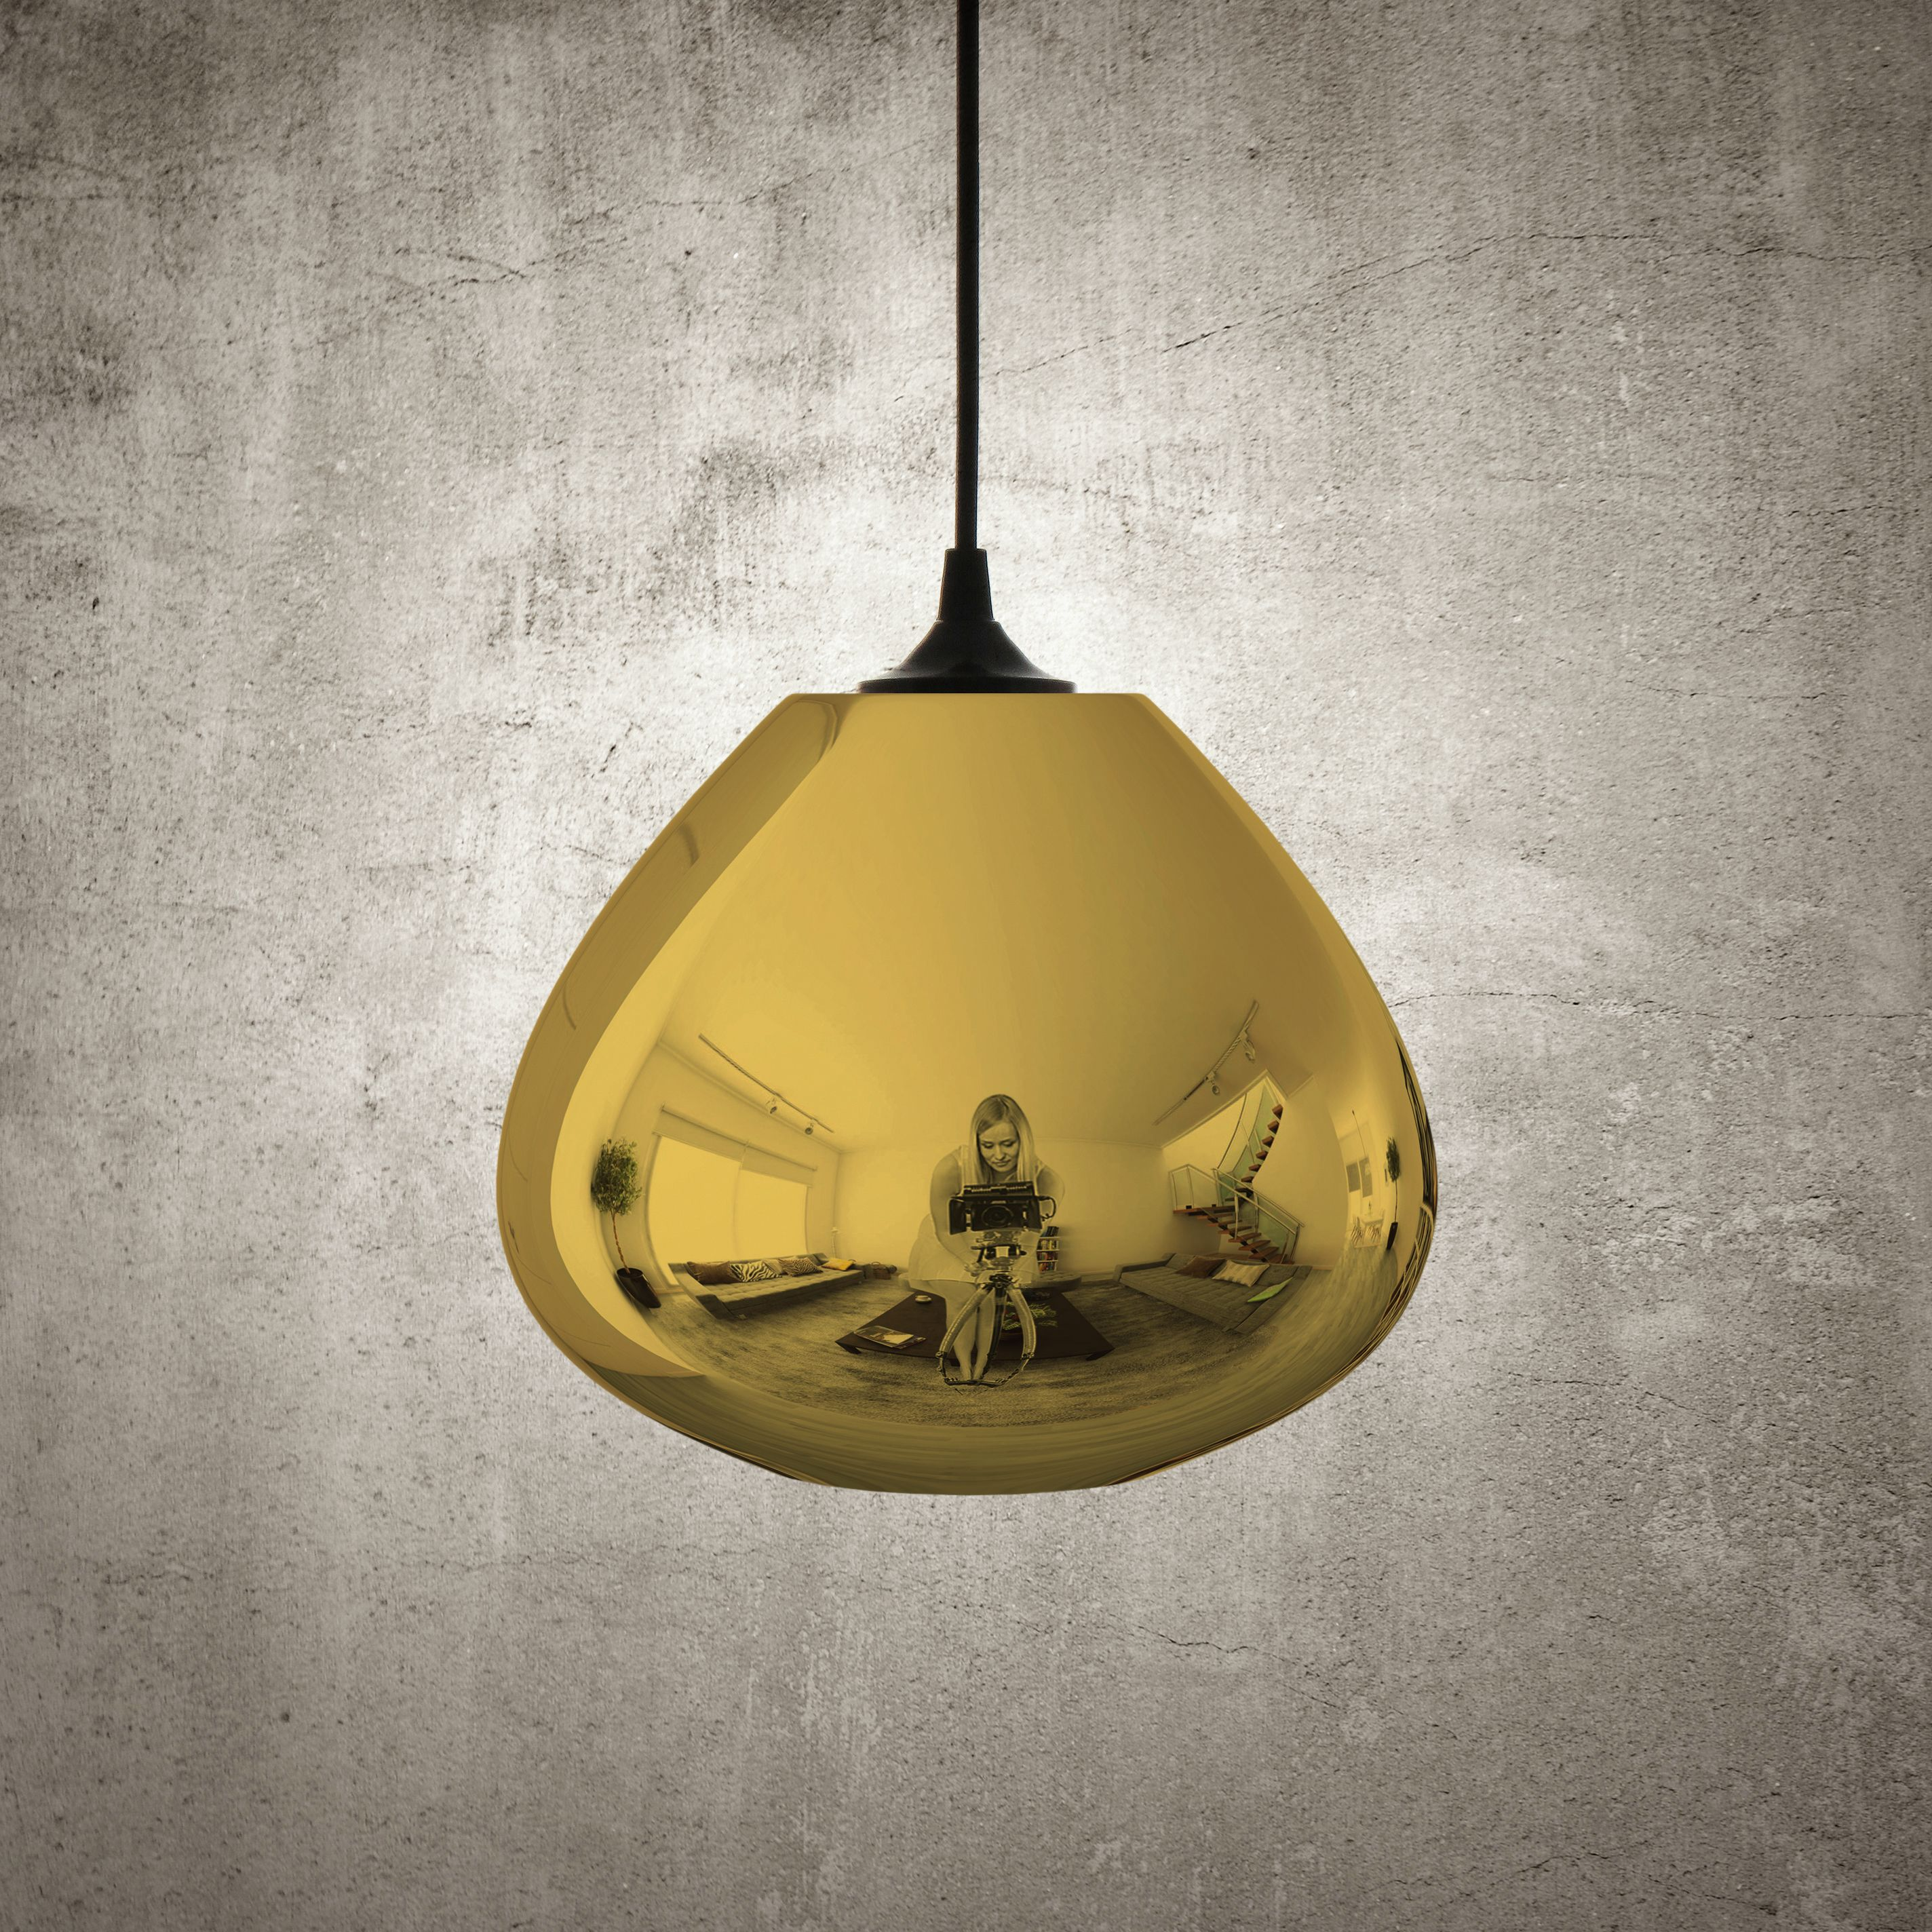 Modern Lighting Quotes The Perla Pendant Lamp Off Gold Perla Light